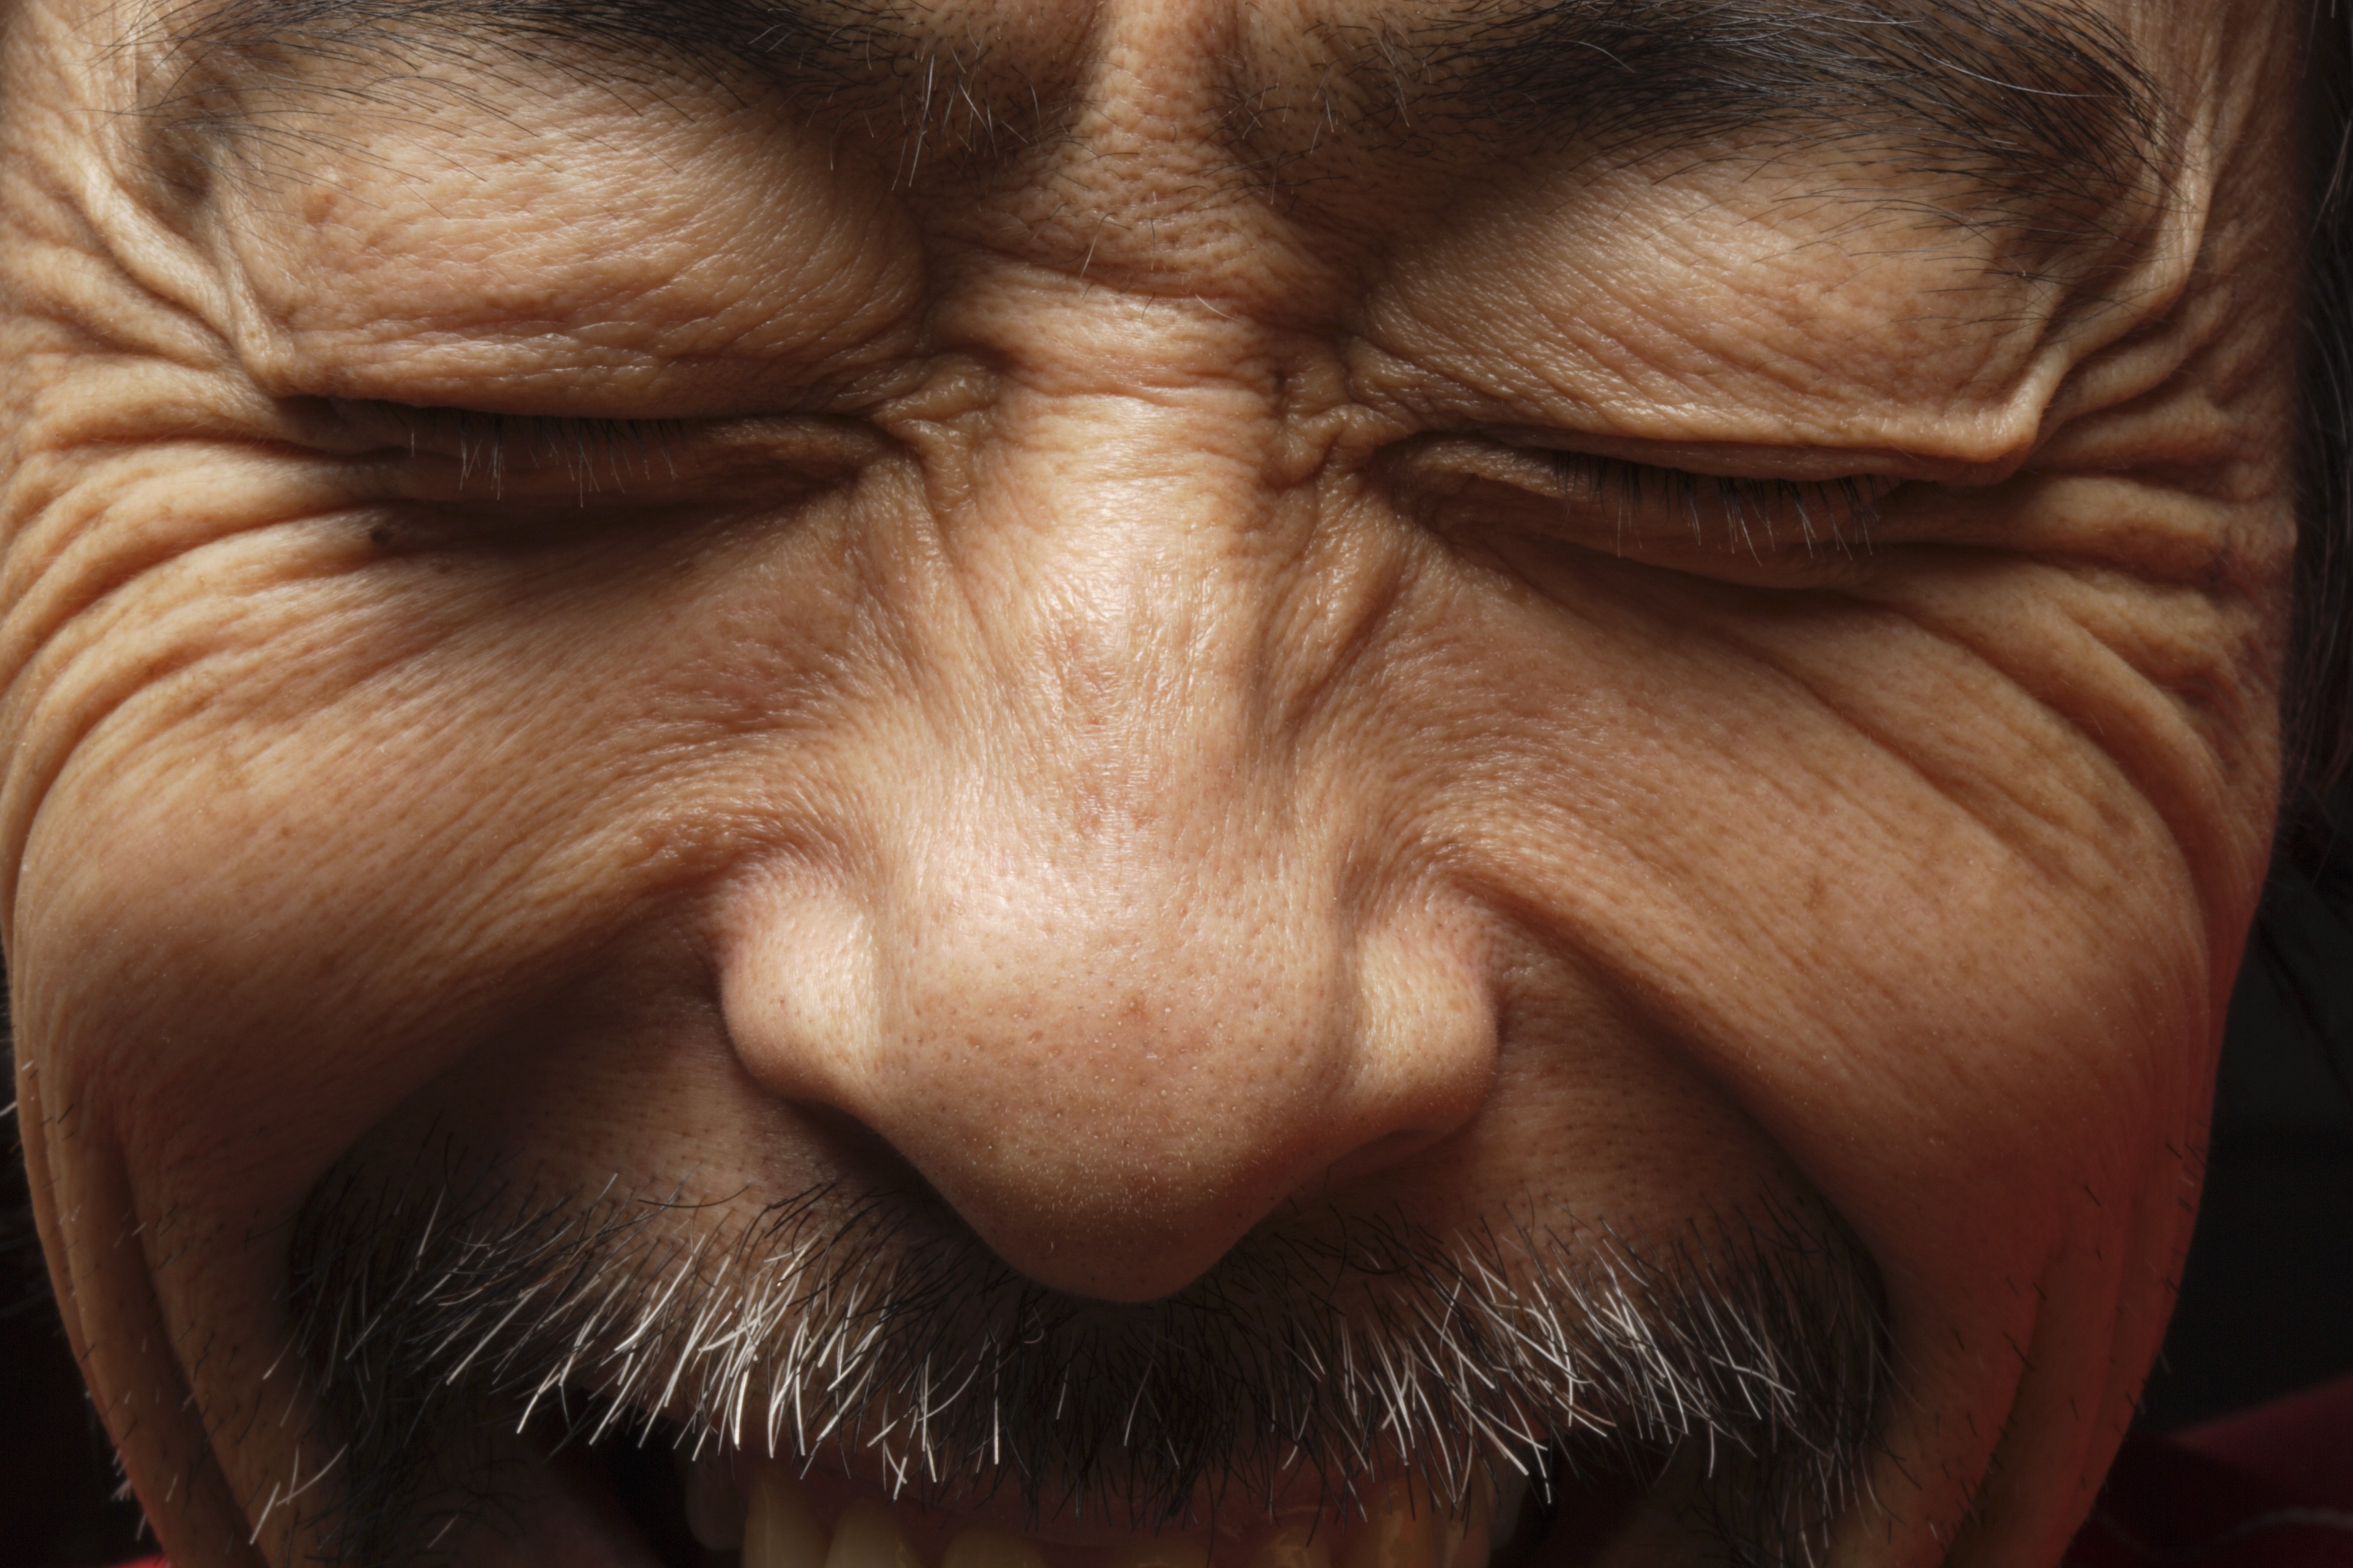 Close up of a man smiling with his eyes closed.